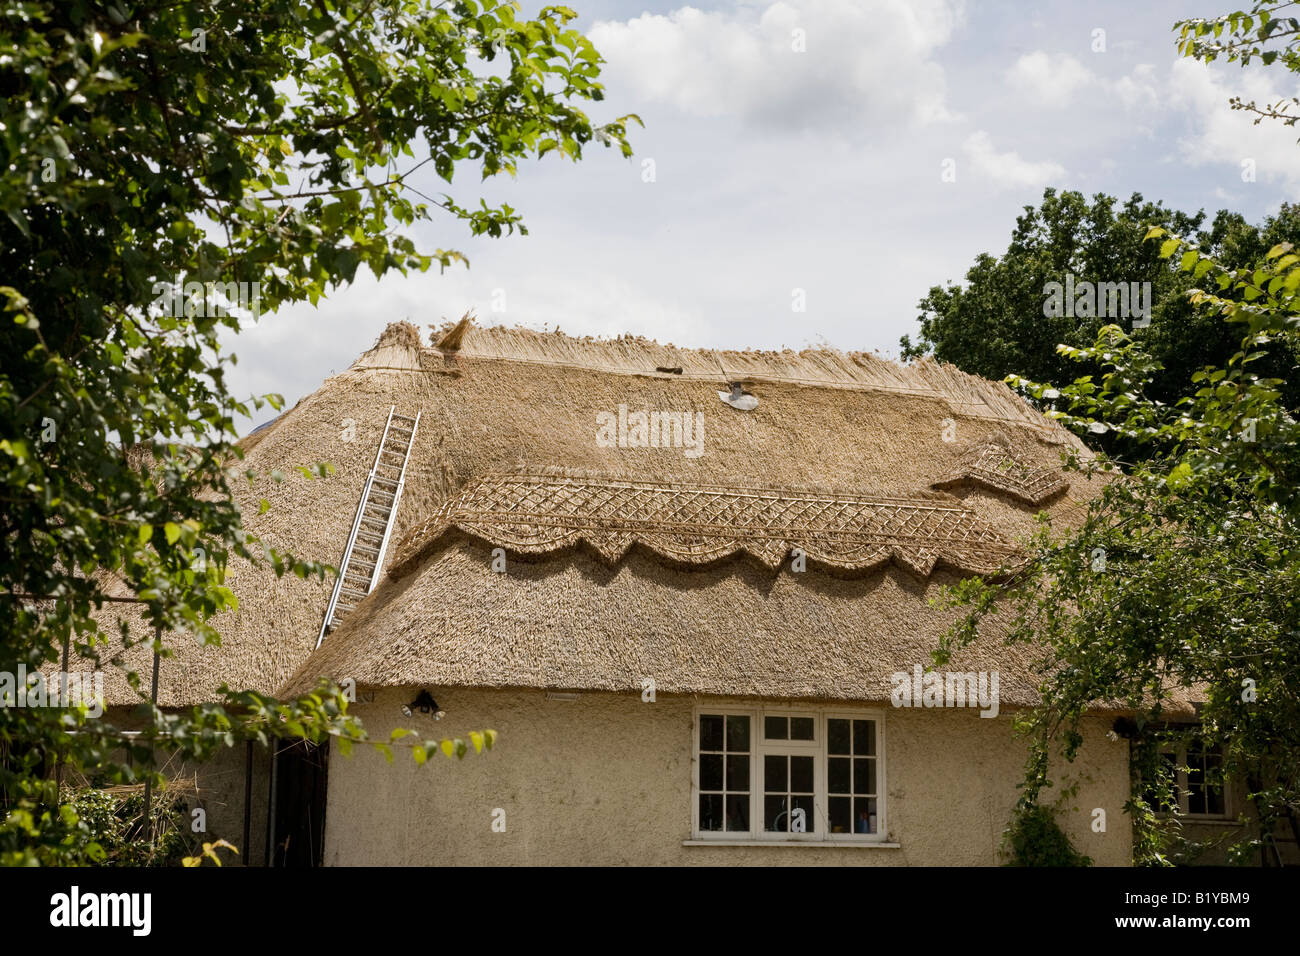 Thatching in progress on old country cottage at Neatishead Norfolk - Stock Image